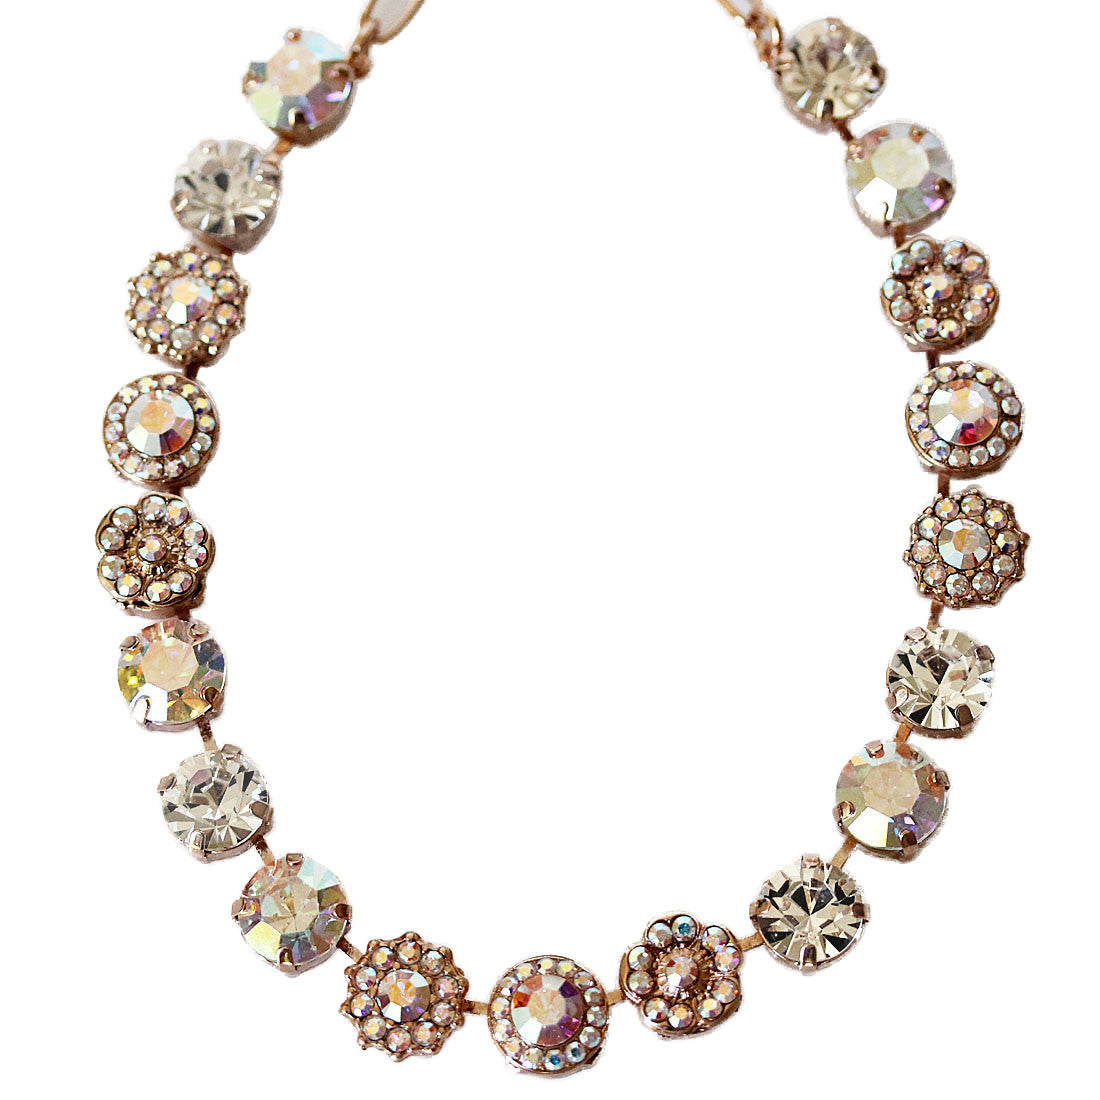 "Mariana Rose Gold Plated Large Flower Shapes Swarovski Crystal Necklace, 18"" Crystal AB 3084 001ABrg"